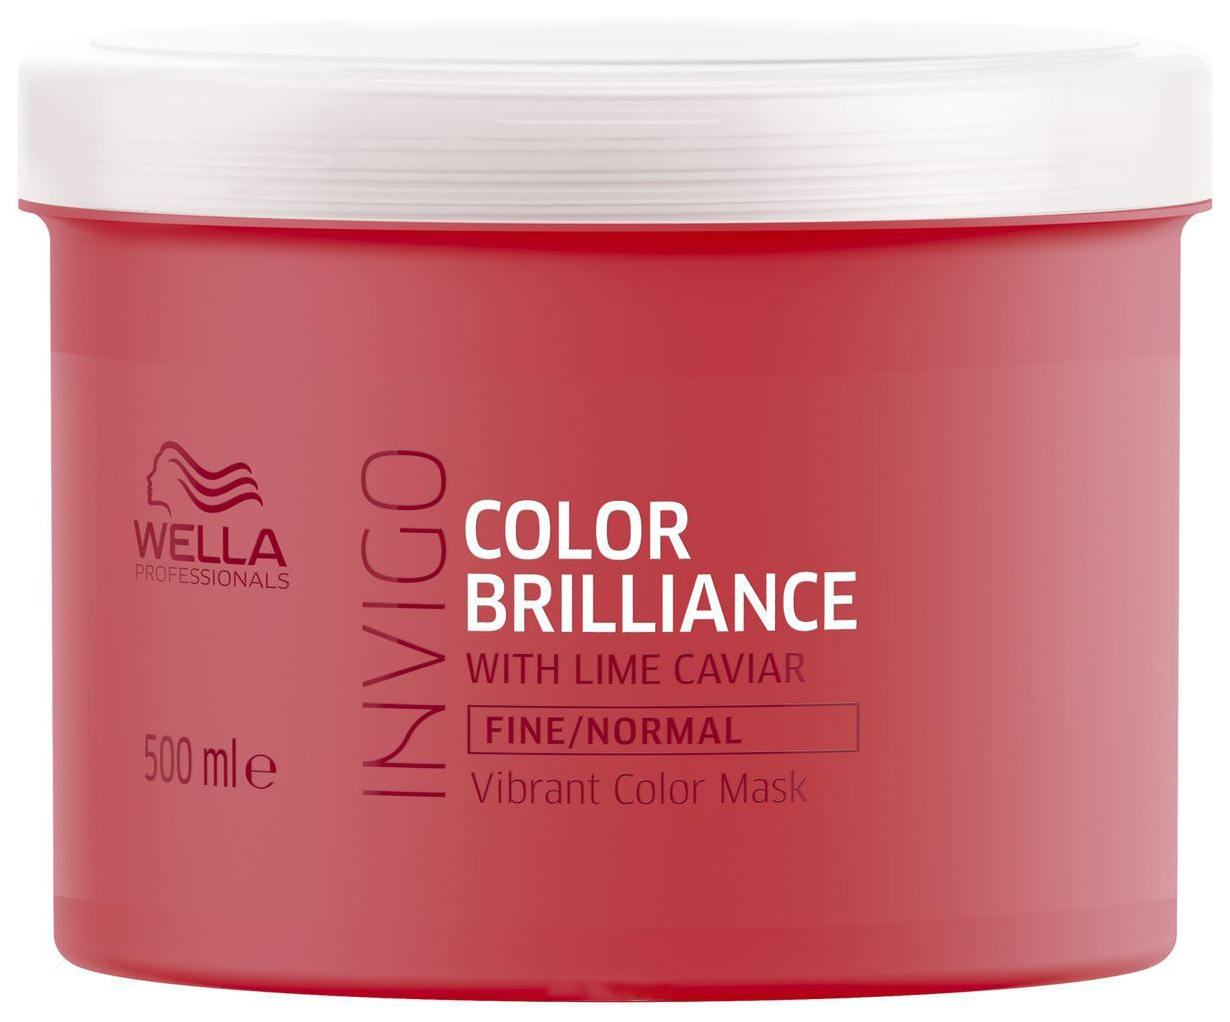 WELLA PROFESSIONALS FINE AND NORMAL HAIR MASK